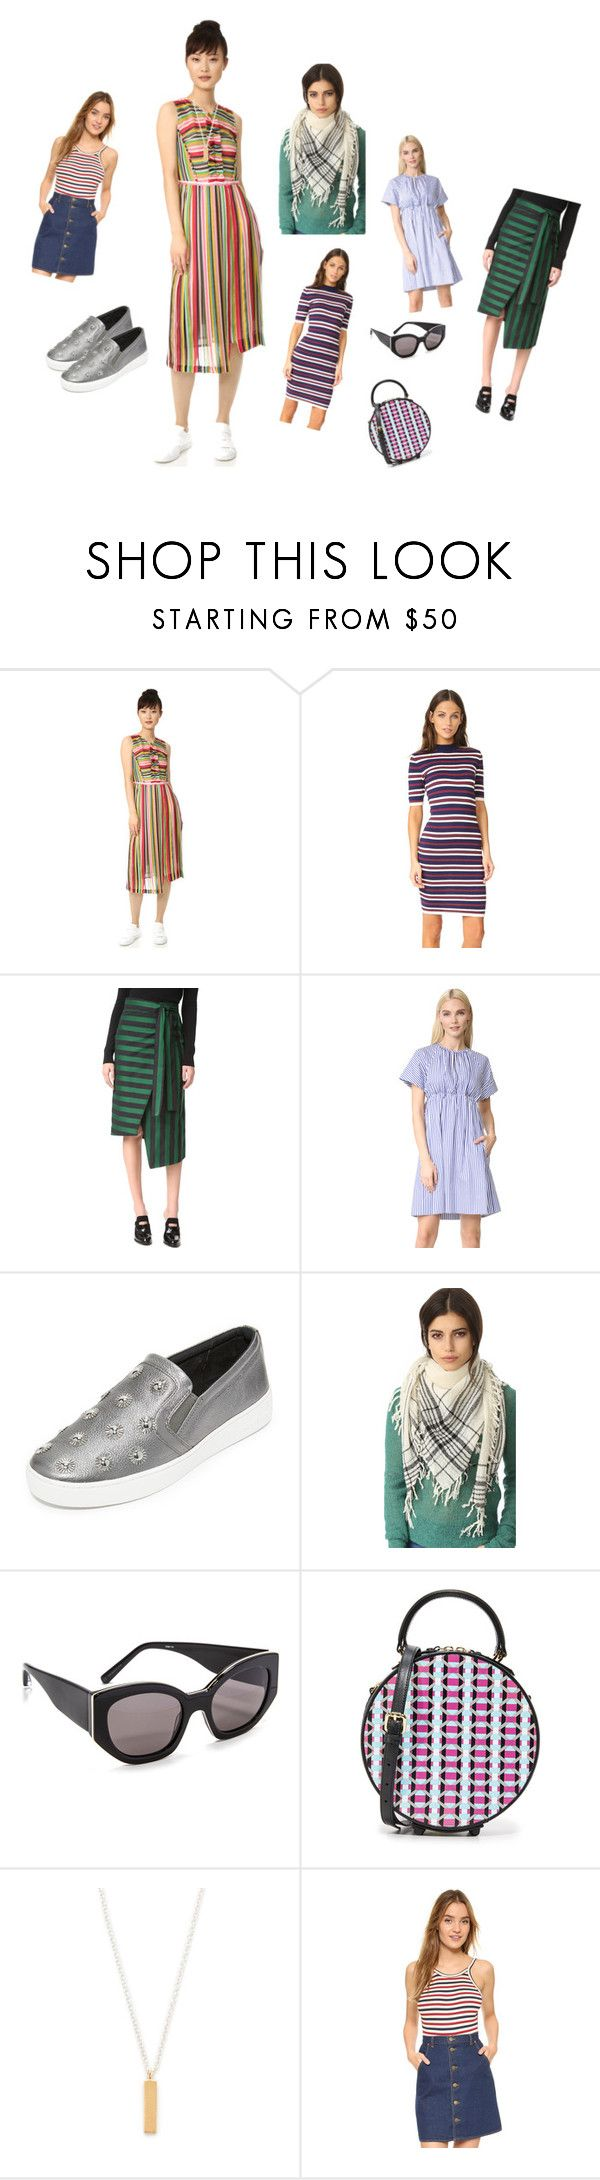 """Trendy Stripes..**"" by yagna ❤ liked on Polyvore featuring N°21, J.O.A., Rochas, Victoria, Victoria Beckham, MICHAEL Michael Kors, Madewell, Elizabeth and James, MayraFedane, Maya Magal and Capulet"